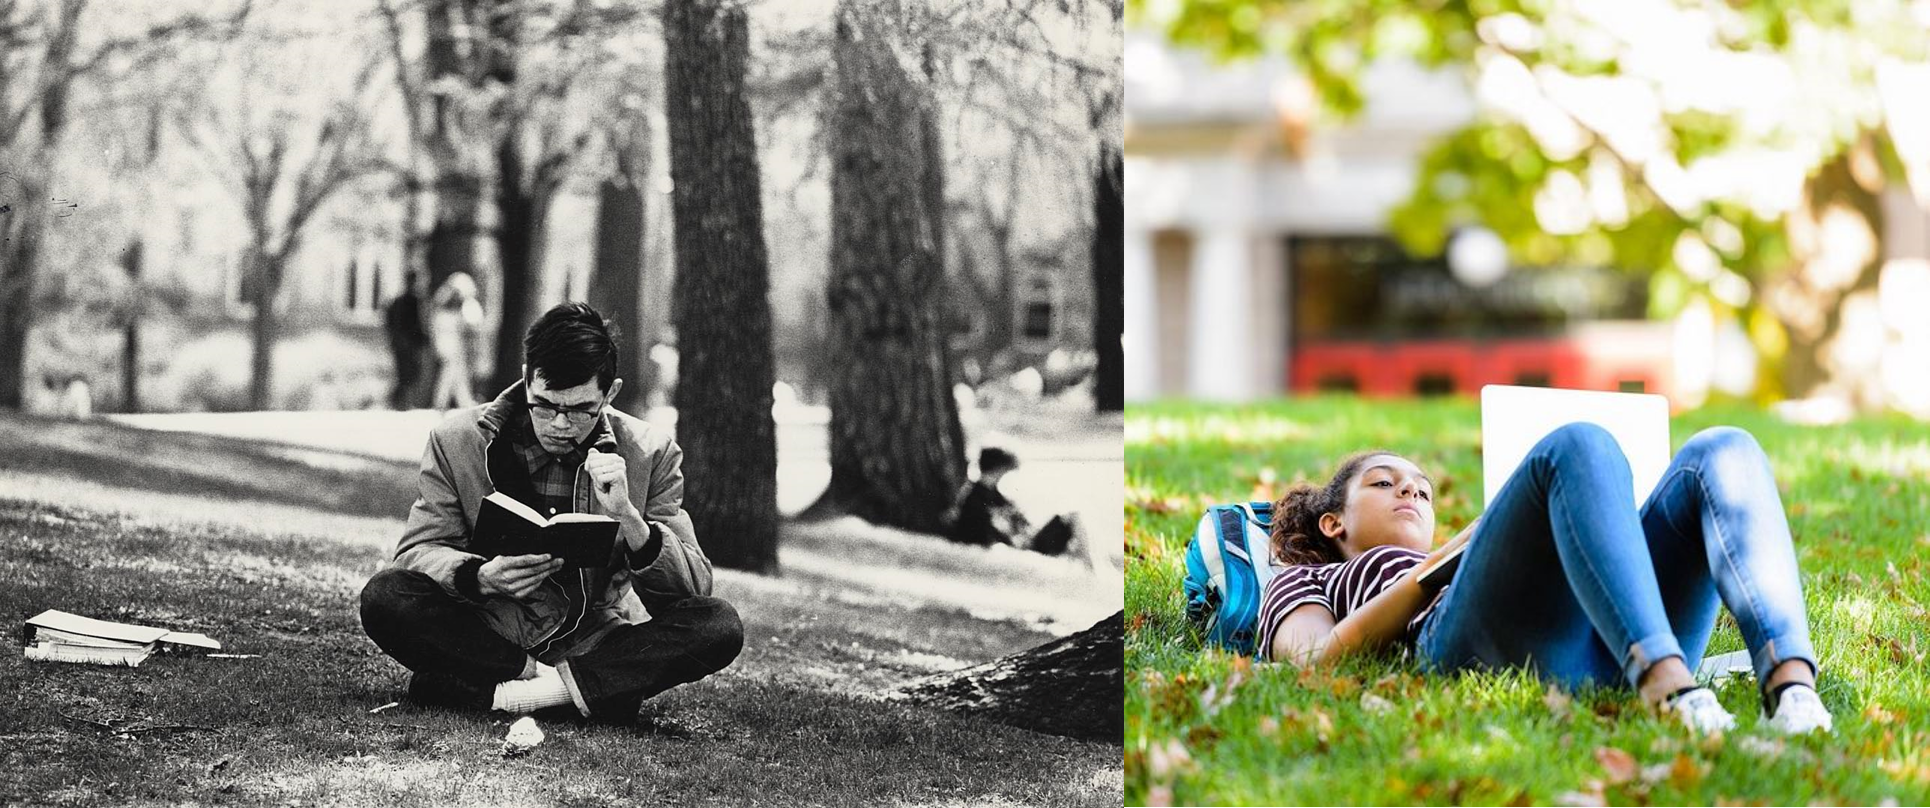 Left: A student takes advantage of a snowless Bascom Hill circa 1960 and studies for class. Right: Swapping out a laptop for a book, a student studies among leaves on Bascom Hill.